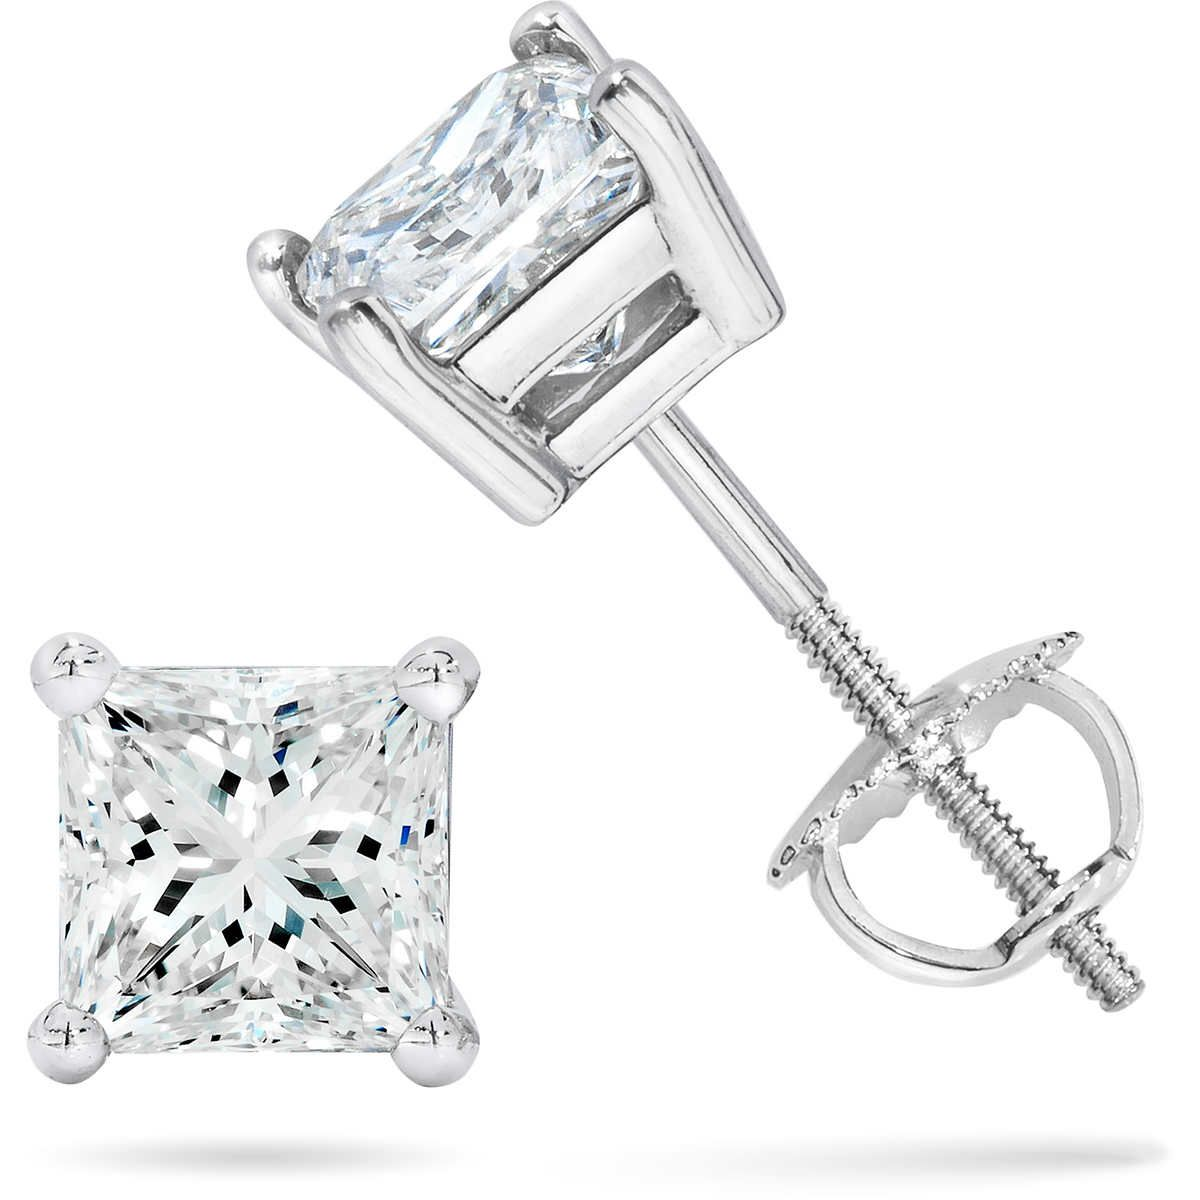 tw earrings ct emerald halo cut p asscher square stud diamond betteridge